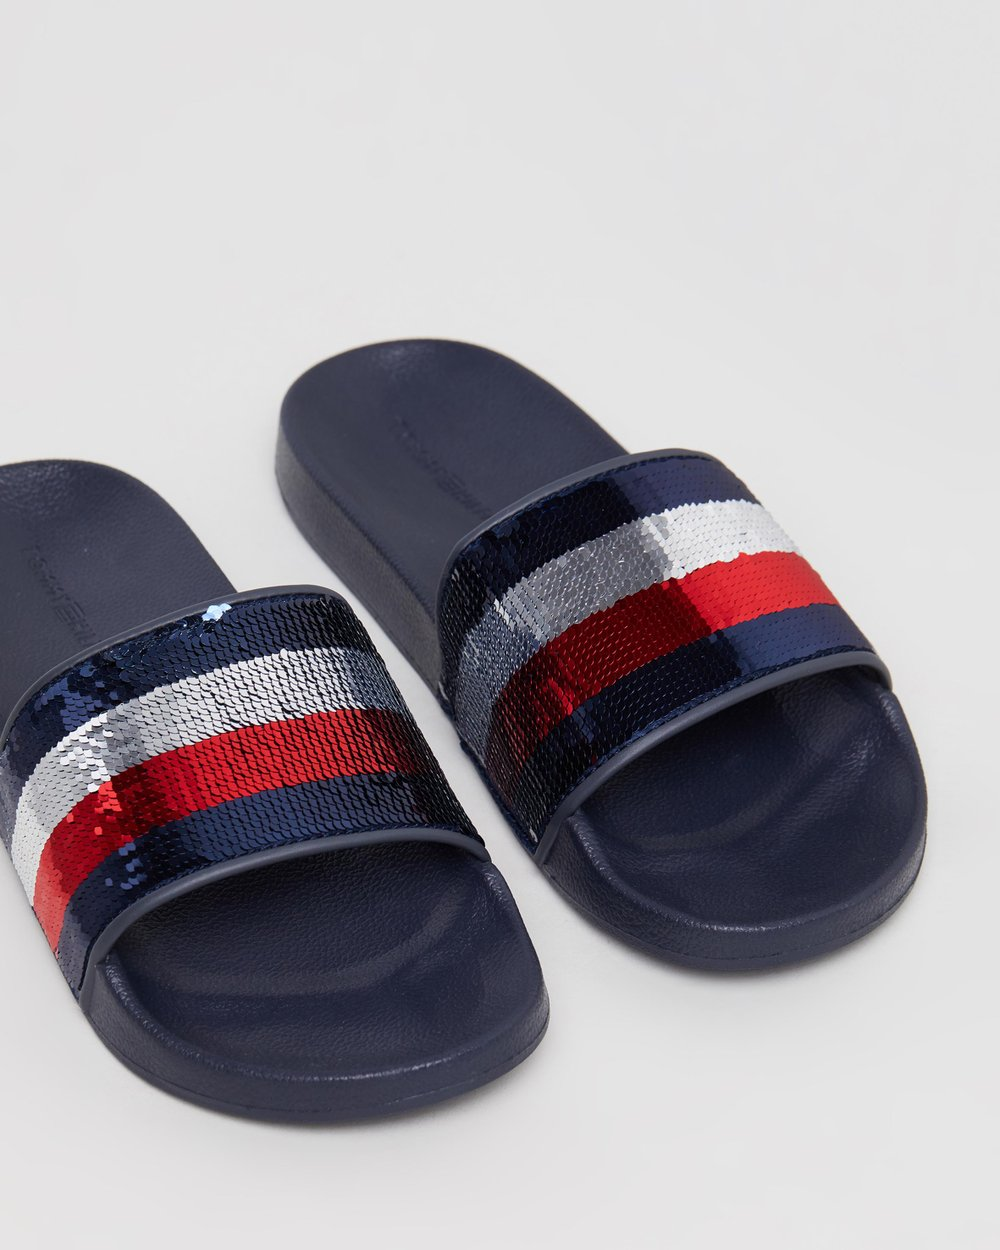 72148e63c89a Tommy Sequins Pool Slides by Tommy Hilfiger Online